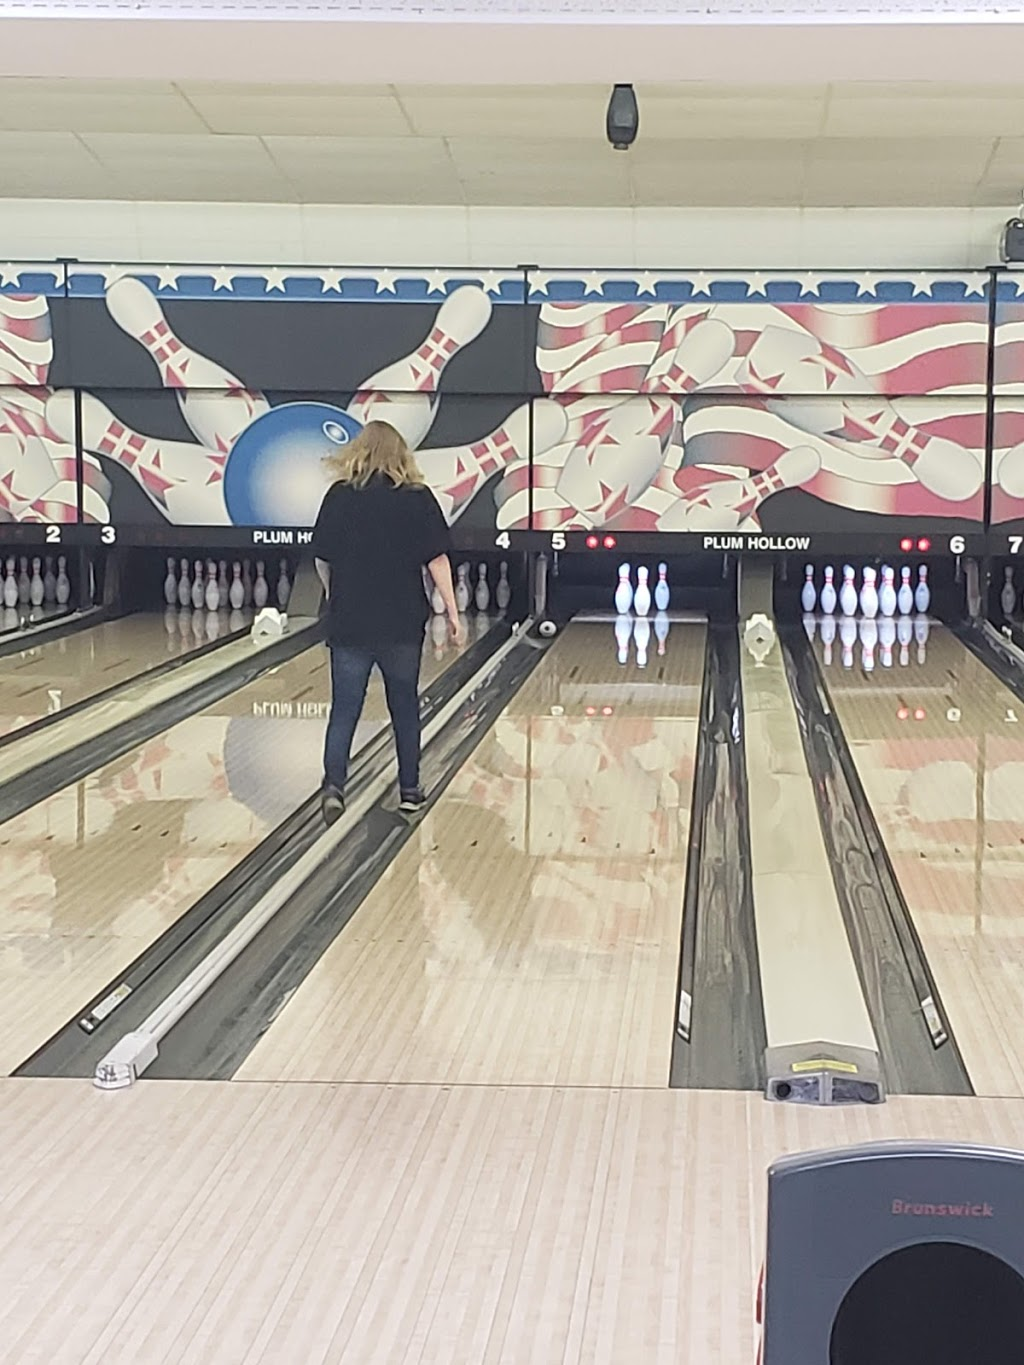 Plum Hollow Family Center - bowling alley  | Photo 5 of 10 | Address: 1933 IL-26, Dixon, IL 61021, USA | Phone: (815) 271-4101